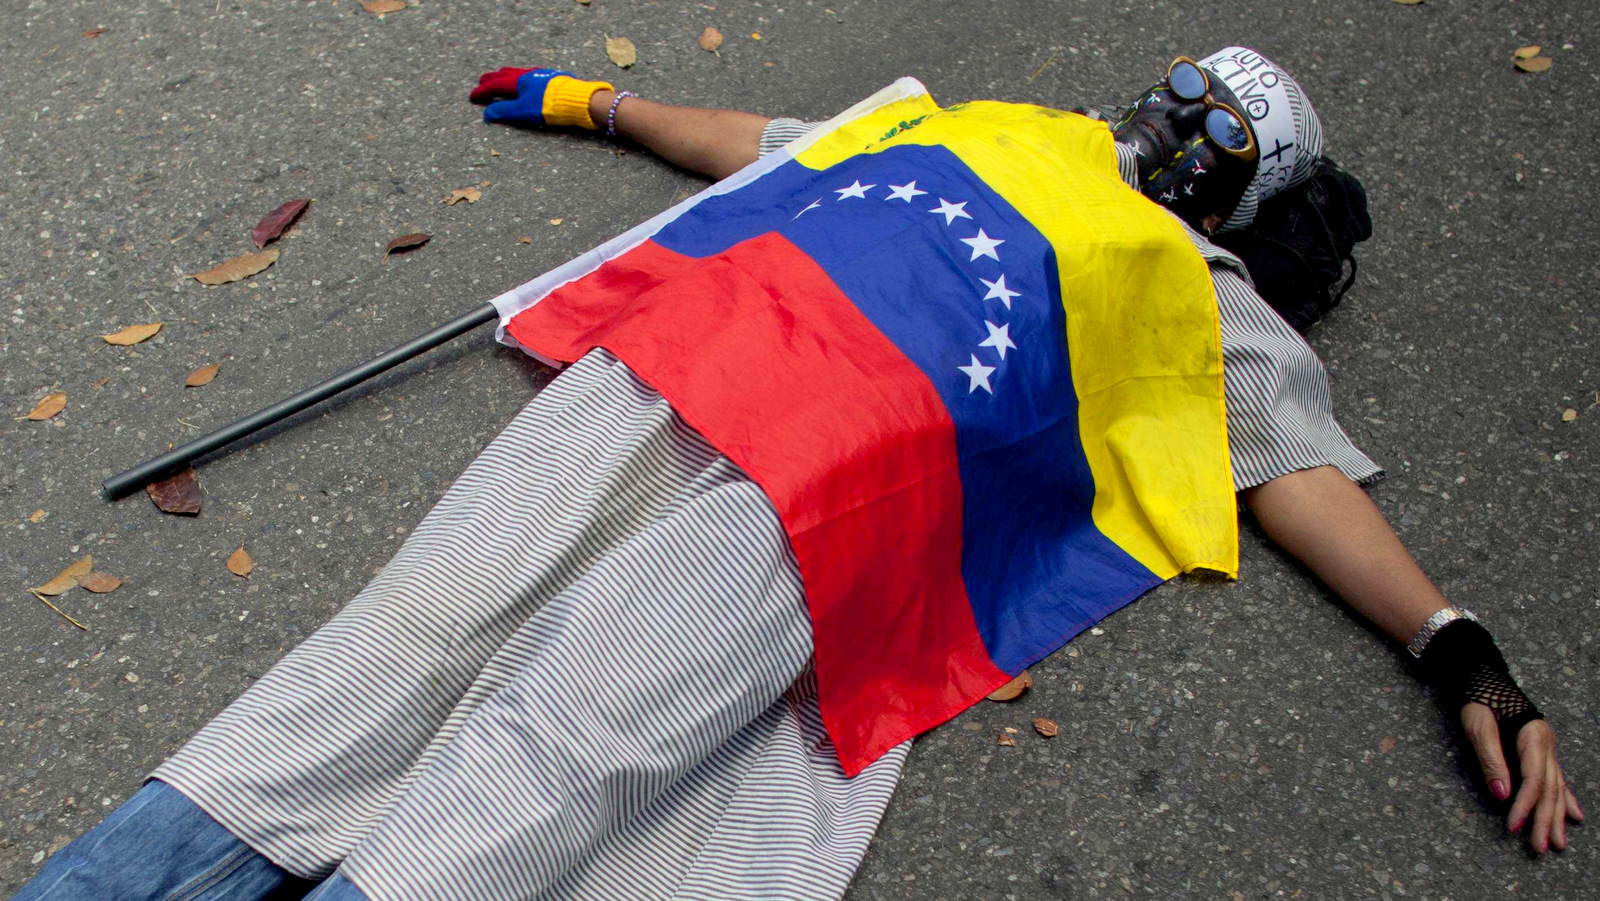 A protester covered by the Venezuelan flag lies on the ground during a protest against violence outside the Vatican's diplomatic mission in Caracas, Venezuela, Wednesday, Feb. 25, 2015. (AP Photo/Ariana Cubillos)